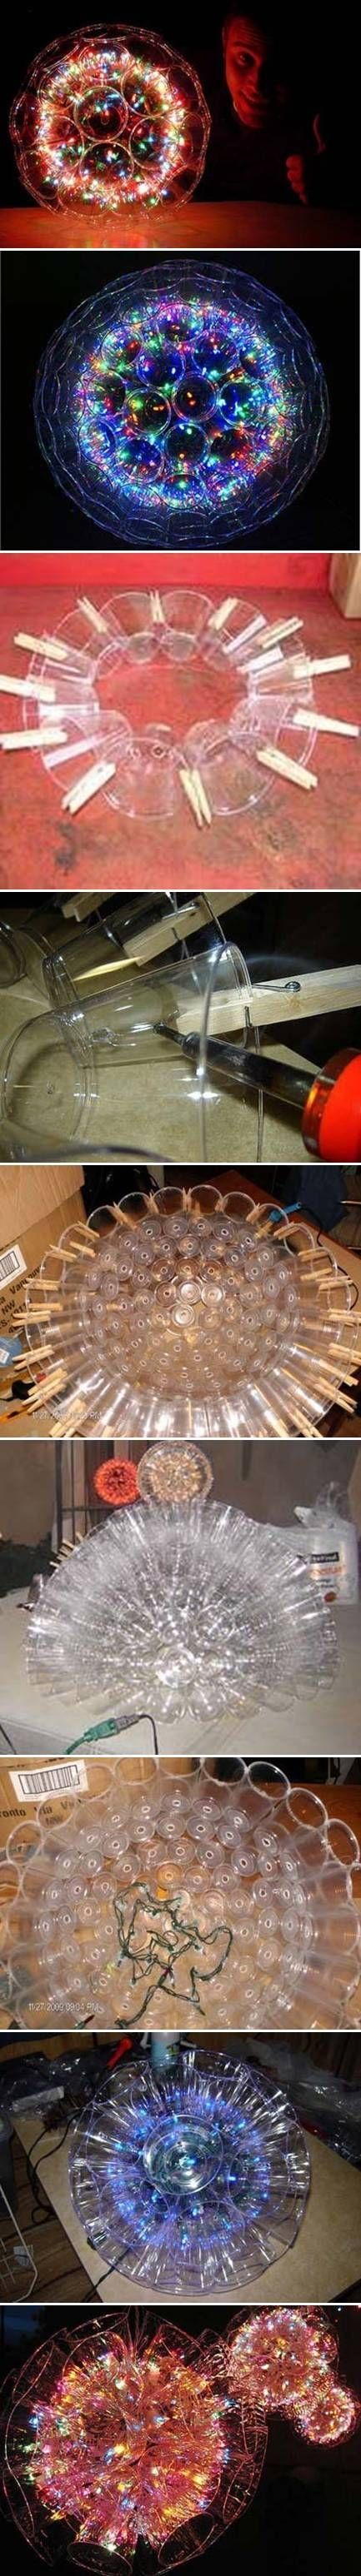 DIY Nice Plastic Cup Lamp Pictures, Photos, and Images for Facebook, Tumblr, Pinterest, and Twitter